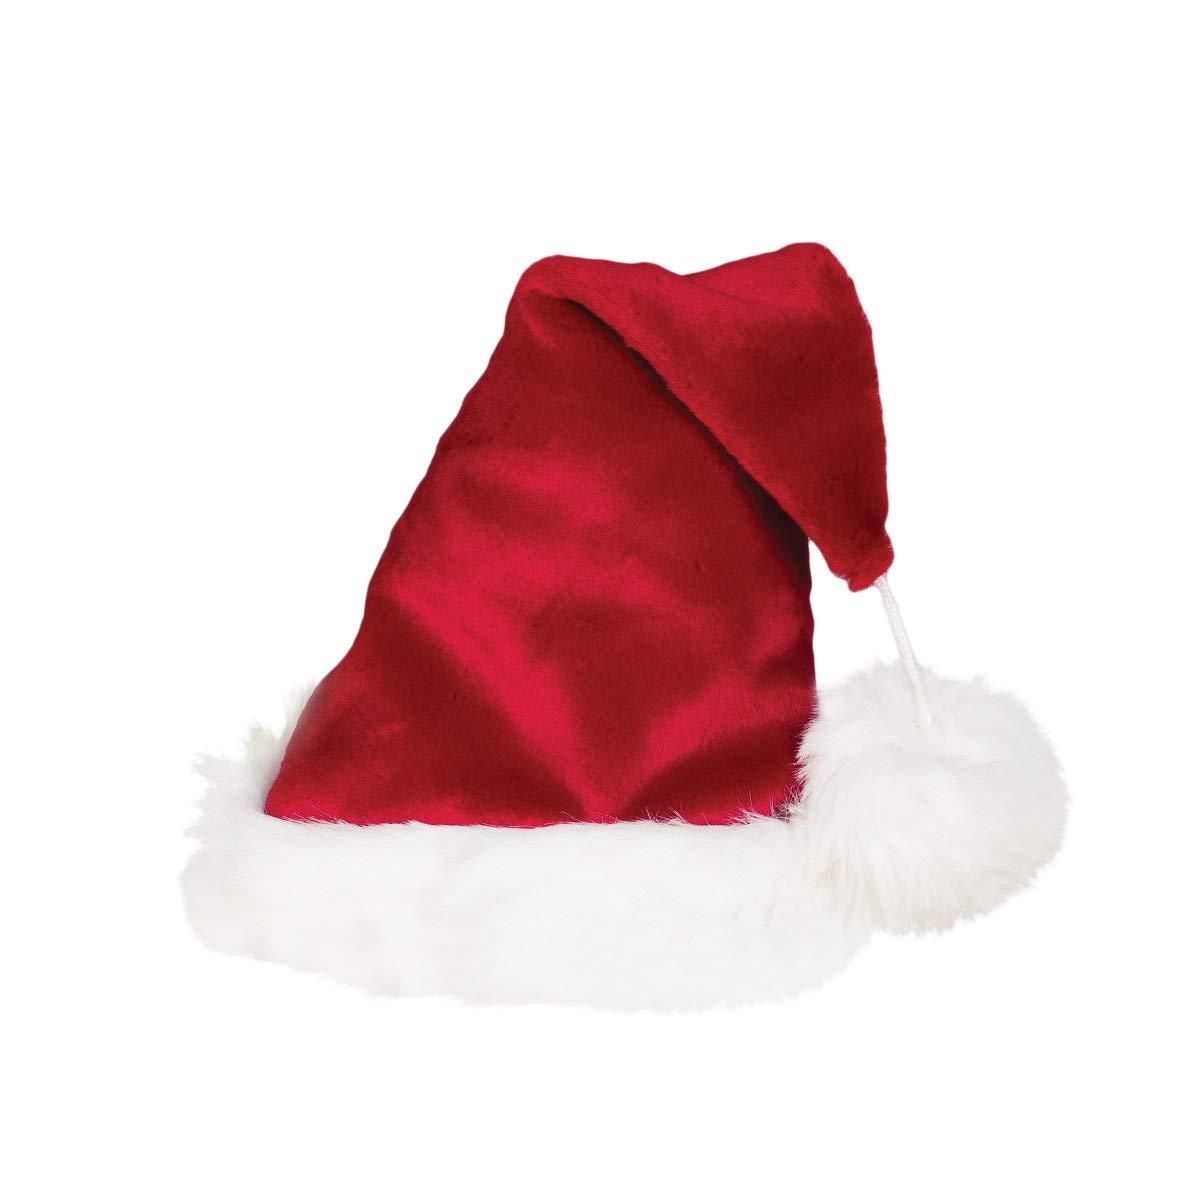 63f99399d07e2 Red Santa Hat with White Fur Trim and Pom - Adult Size